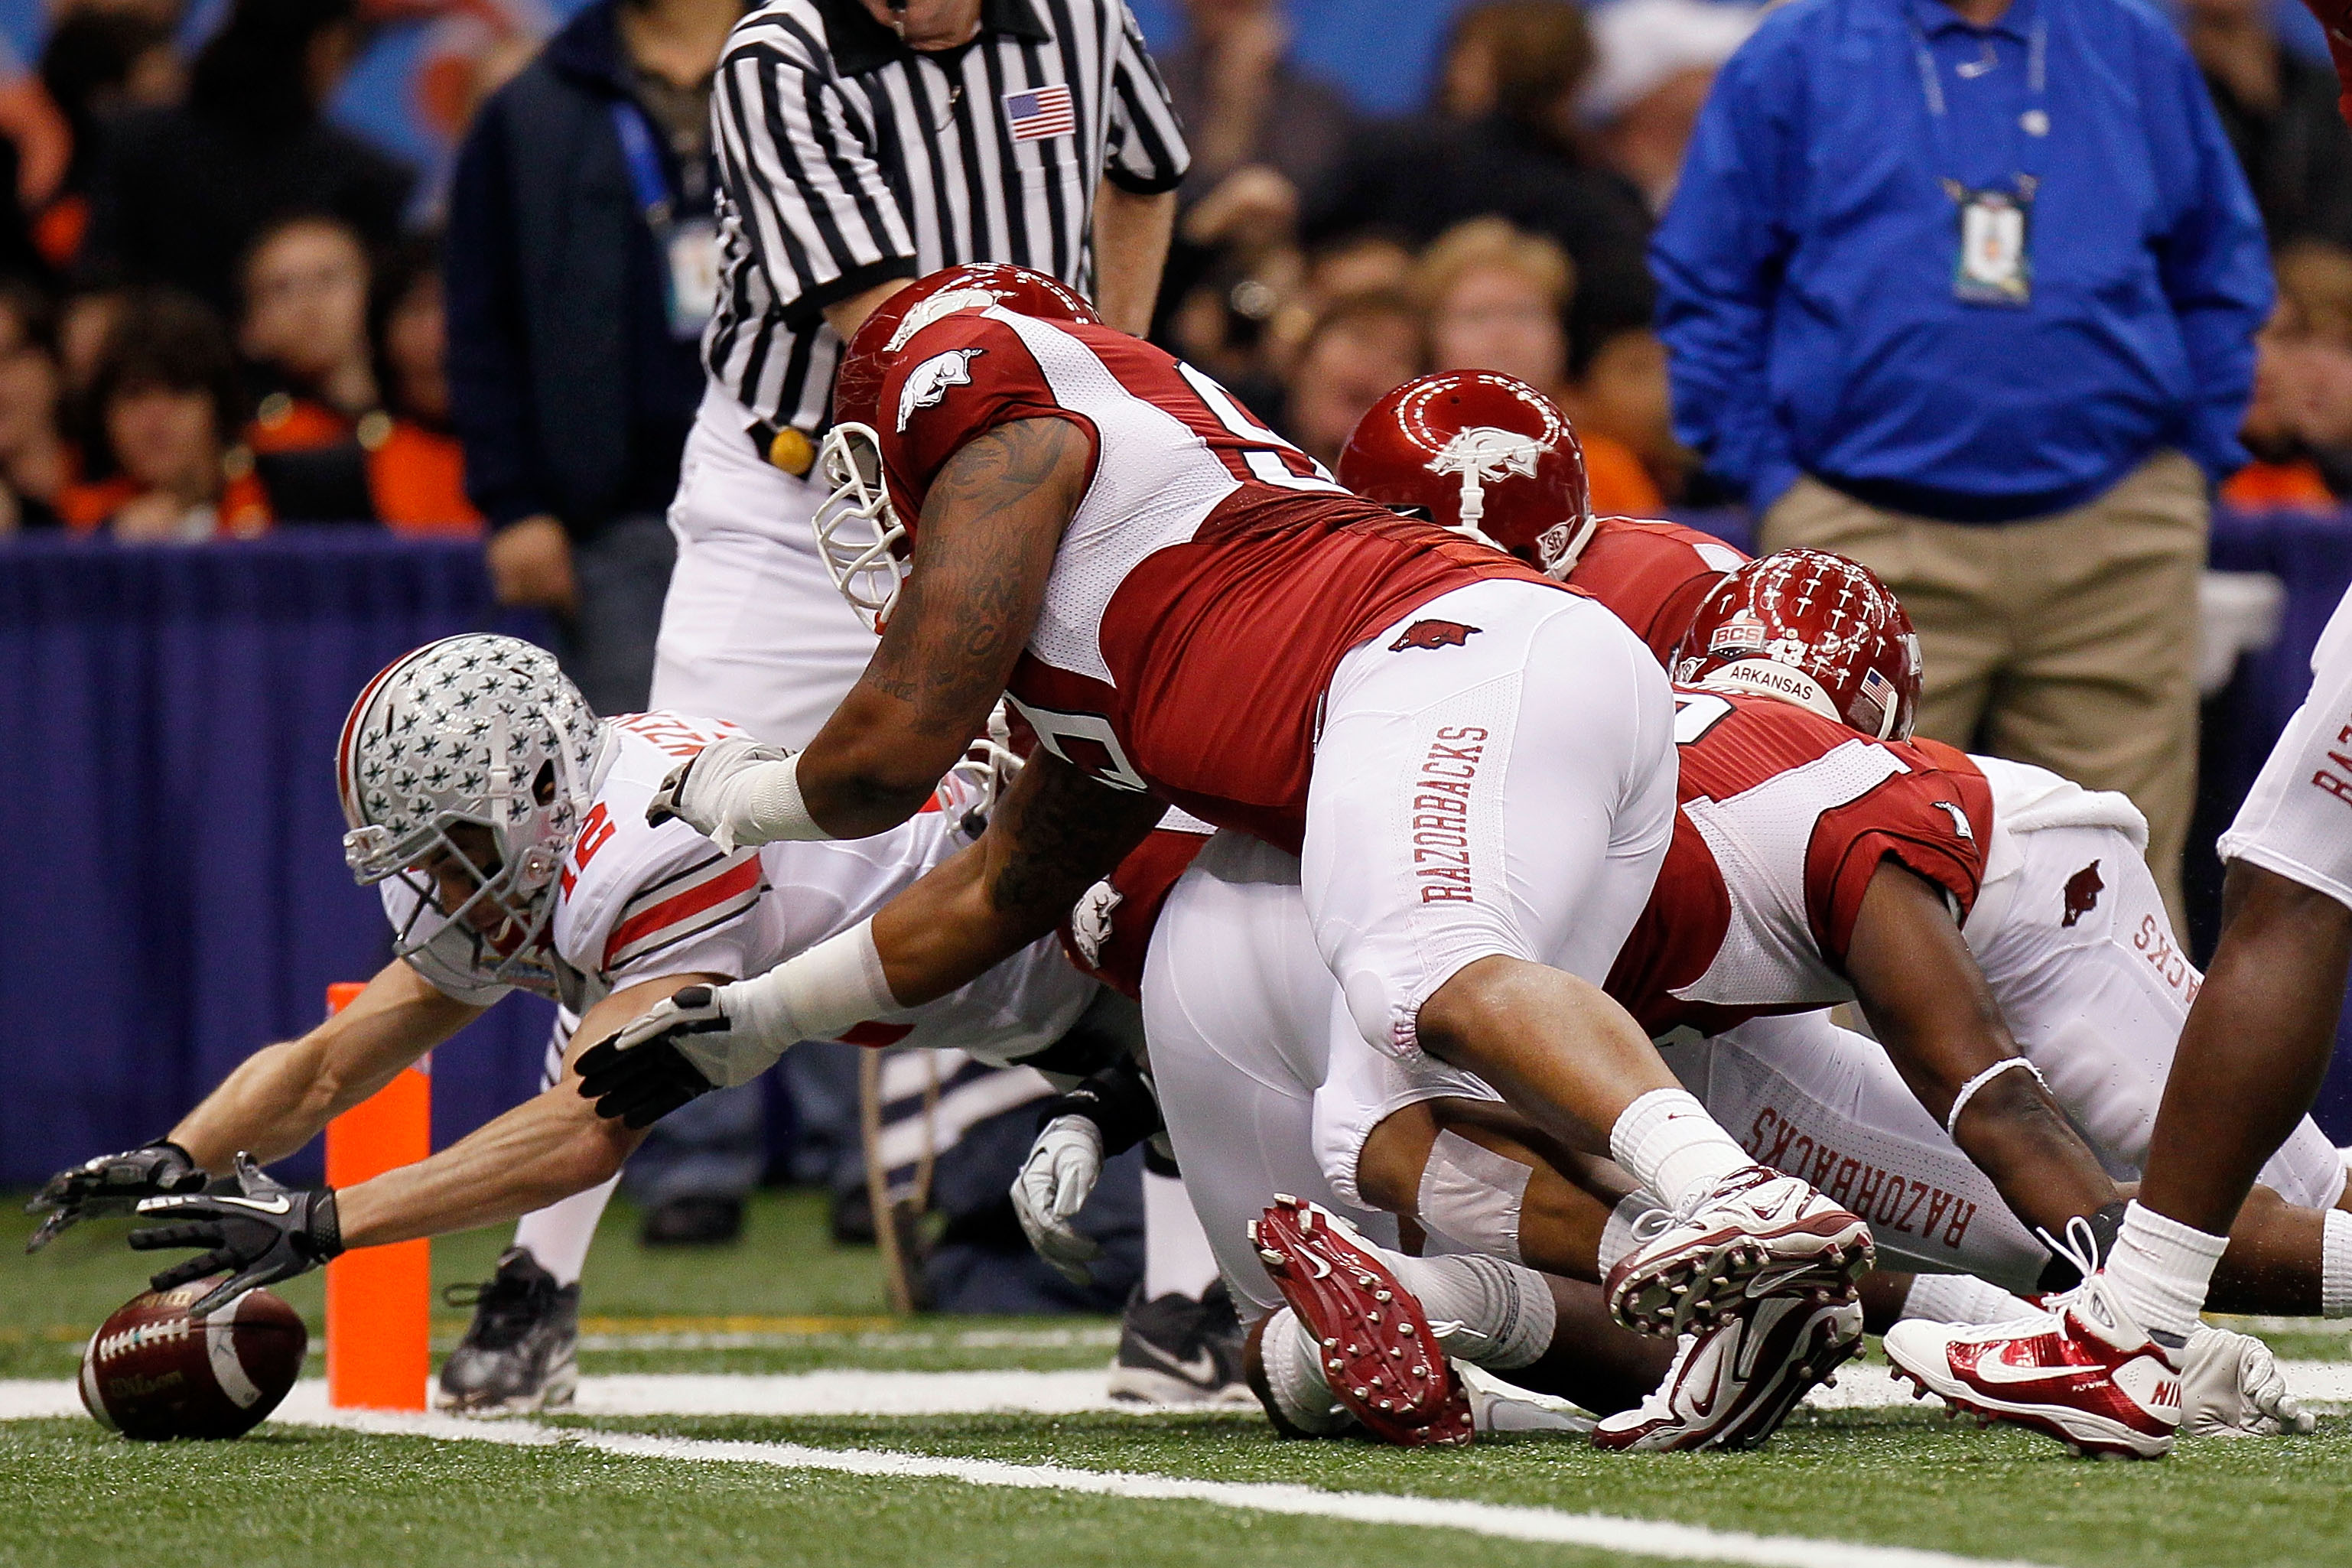 NEW ORLEANS, LA - JANUARY 04:  Dane Sanzenbacher #12 of the Ohio State Buckeyes recovers a Terrelle Pryor #2 fumble in the endzone for a touchdown in the first quarter against the Arkansas Razorbacks during the Allstate Sugar Bowl at the Louisiana Superdo